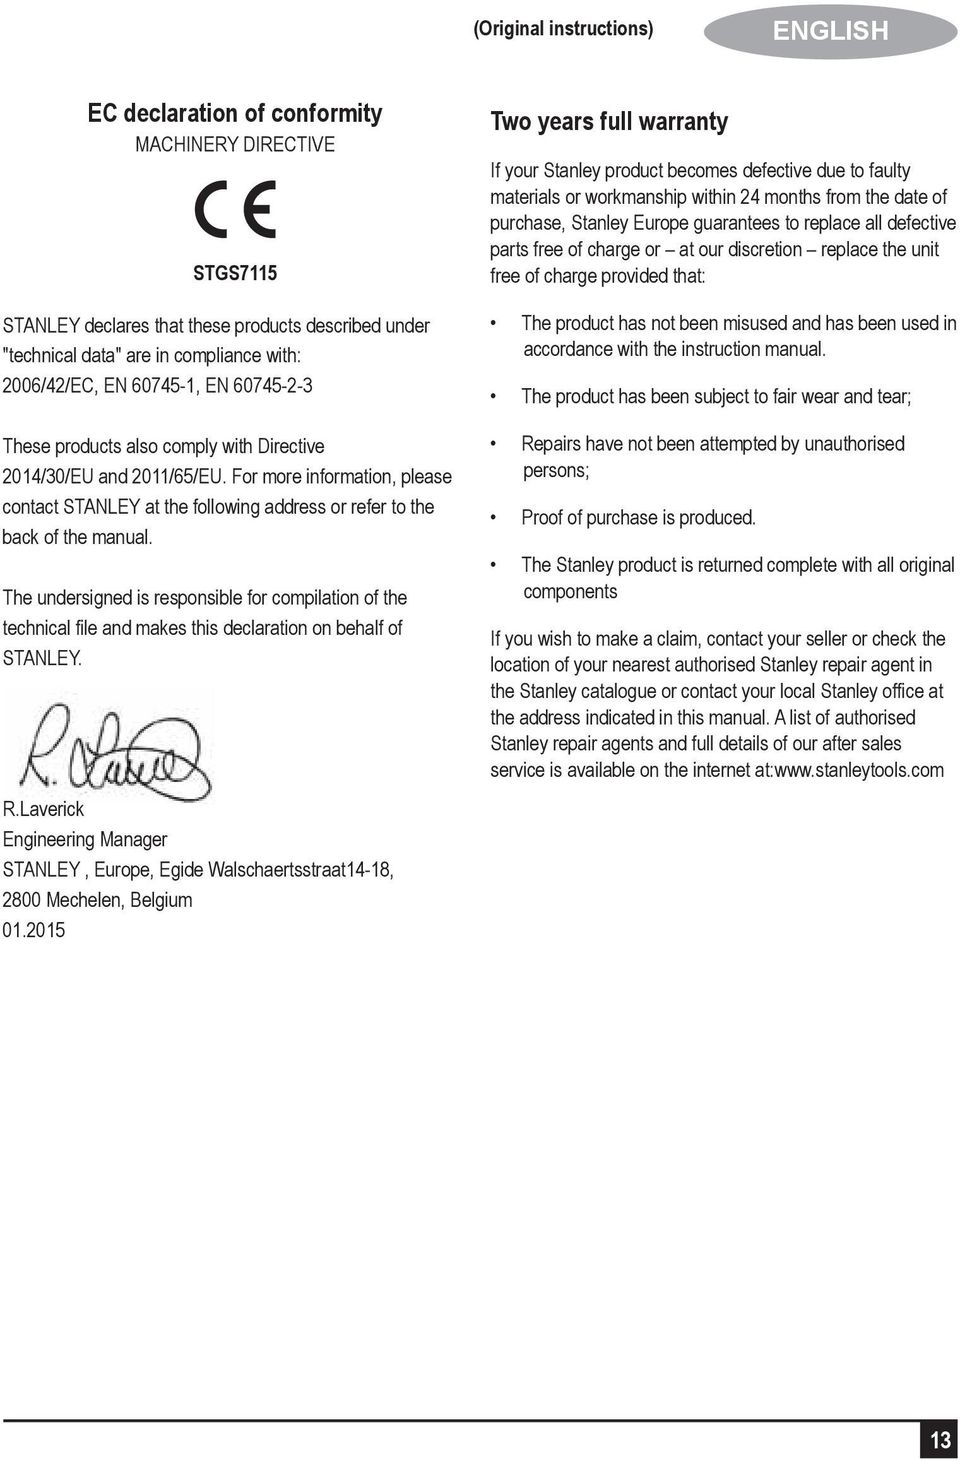 The undersigned is responsible for compilation of the technical file and makes this declaration on behalf of STANLEY. R.